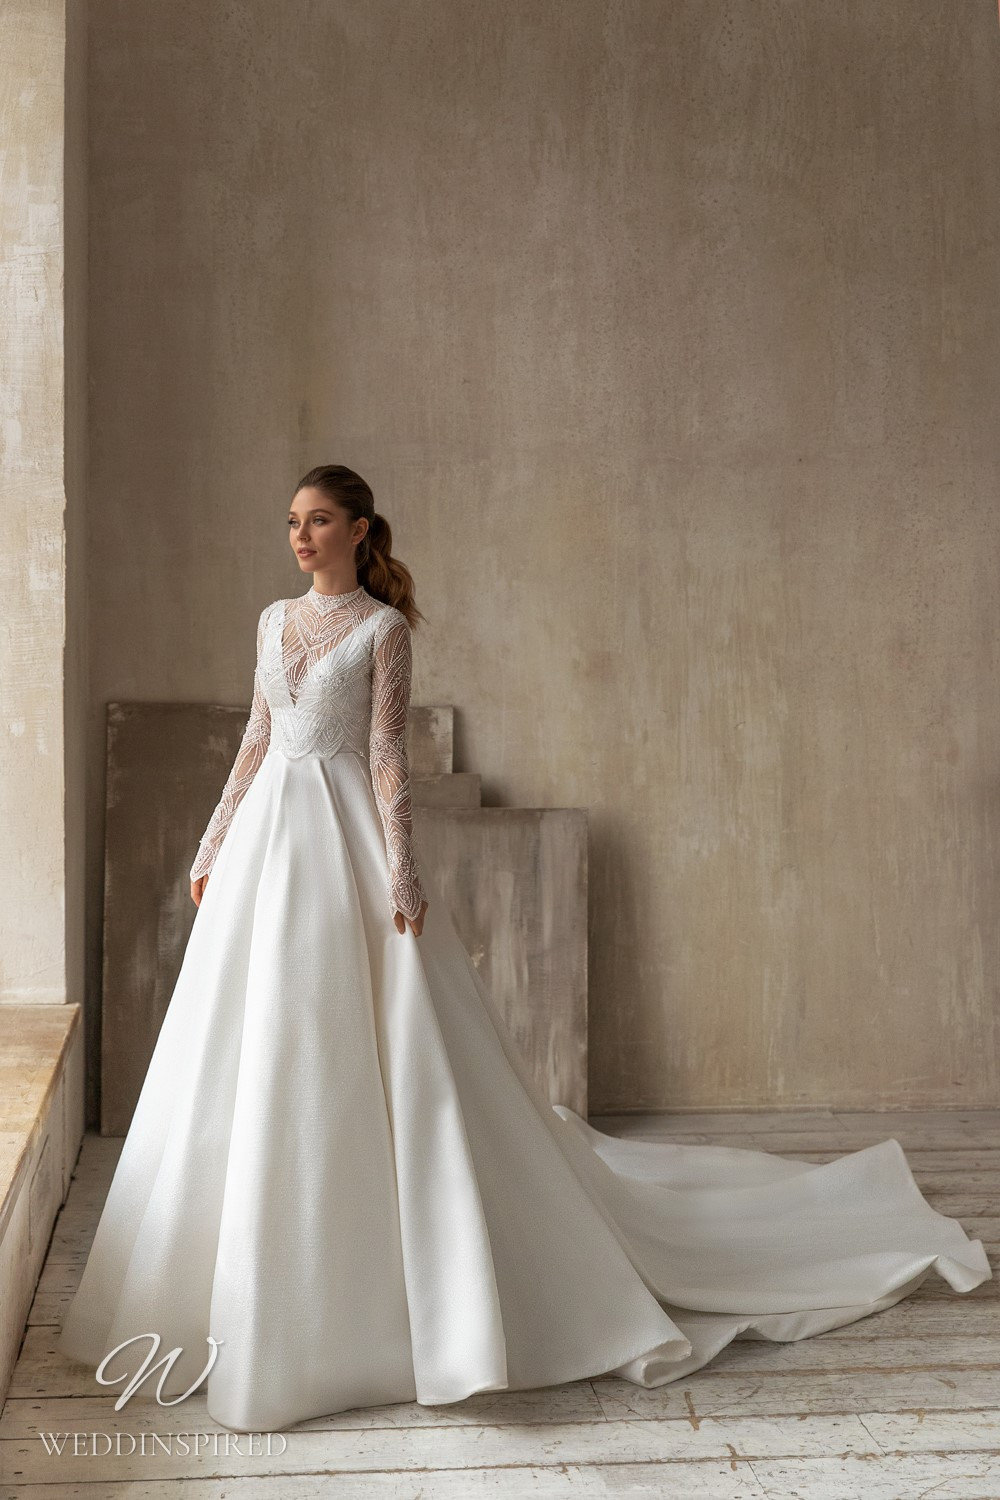 An Eva Lendel 2021 crepe and mesh ball gown wedding dress with long illusion sleeves and a train